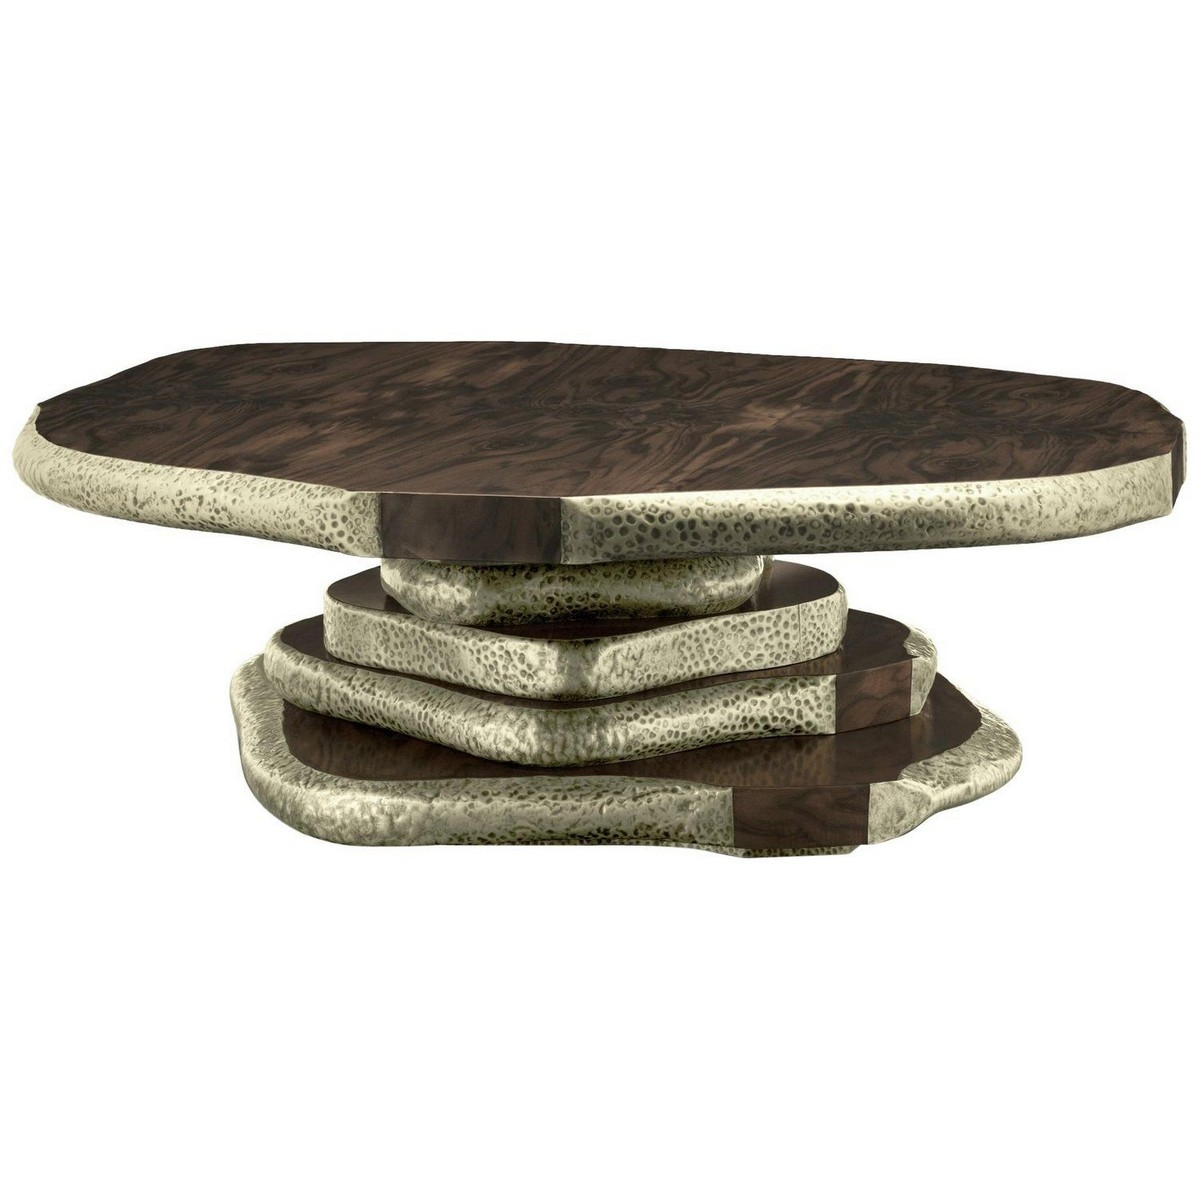 center table Salone Del Mobile Milano | Top Center Tables latza2